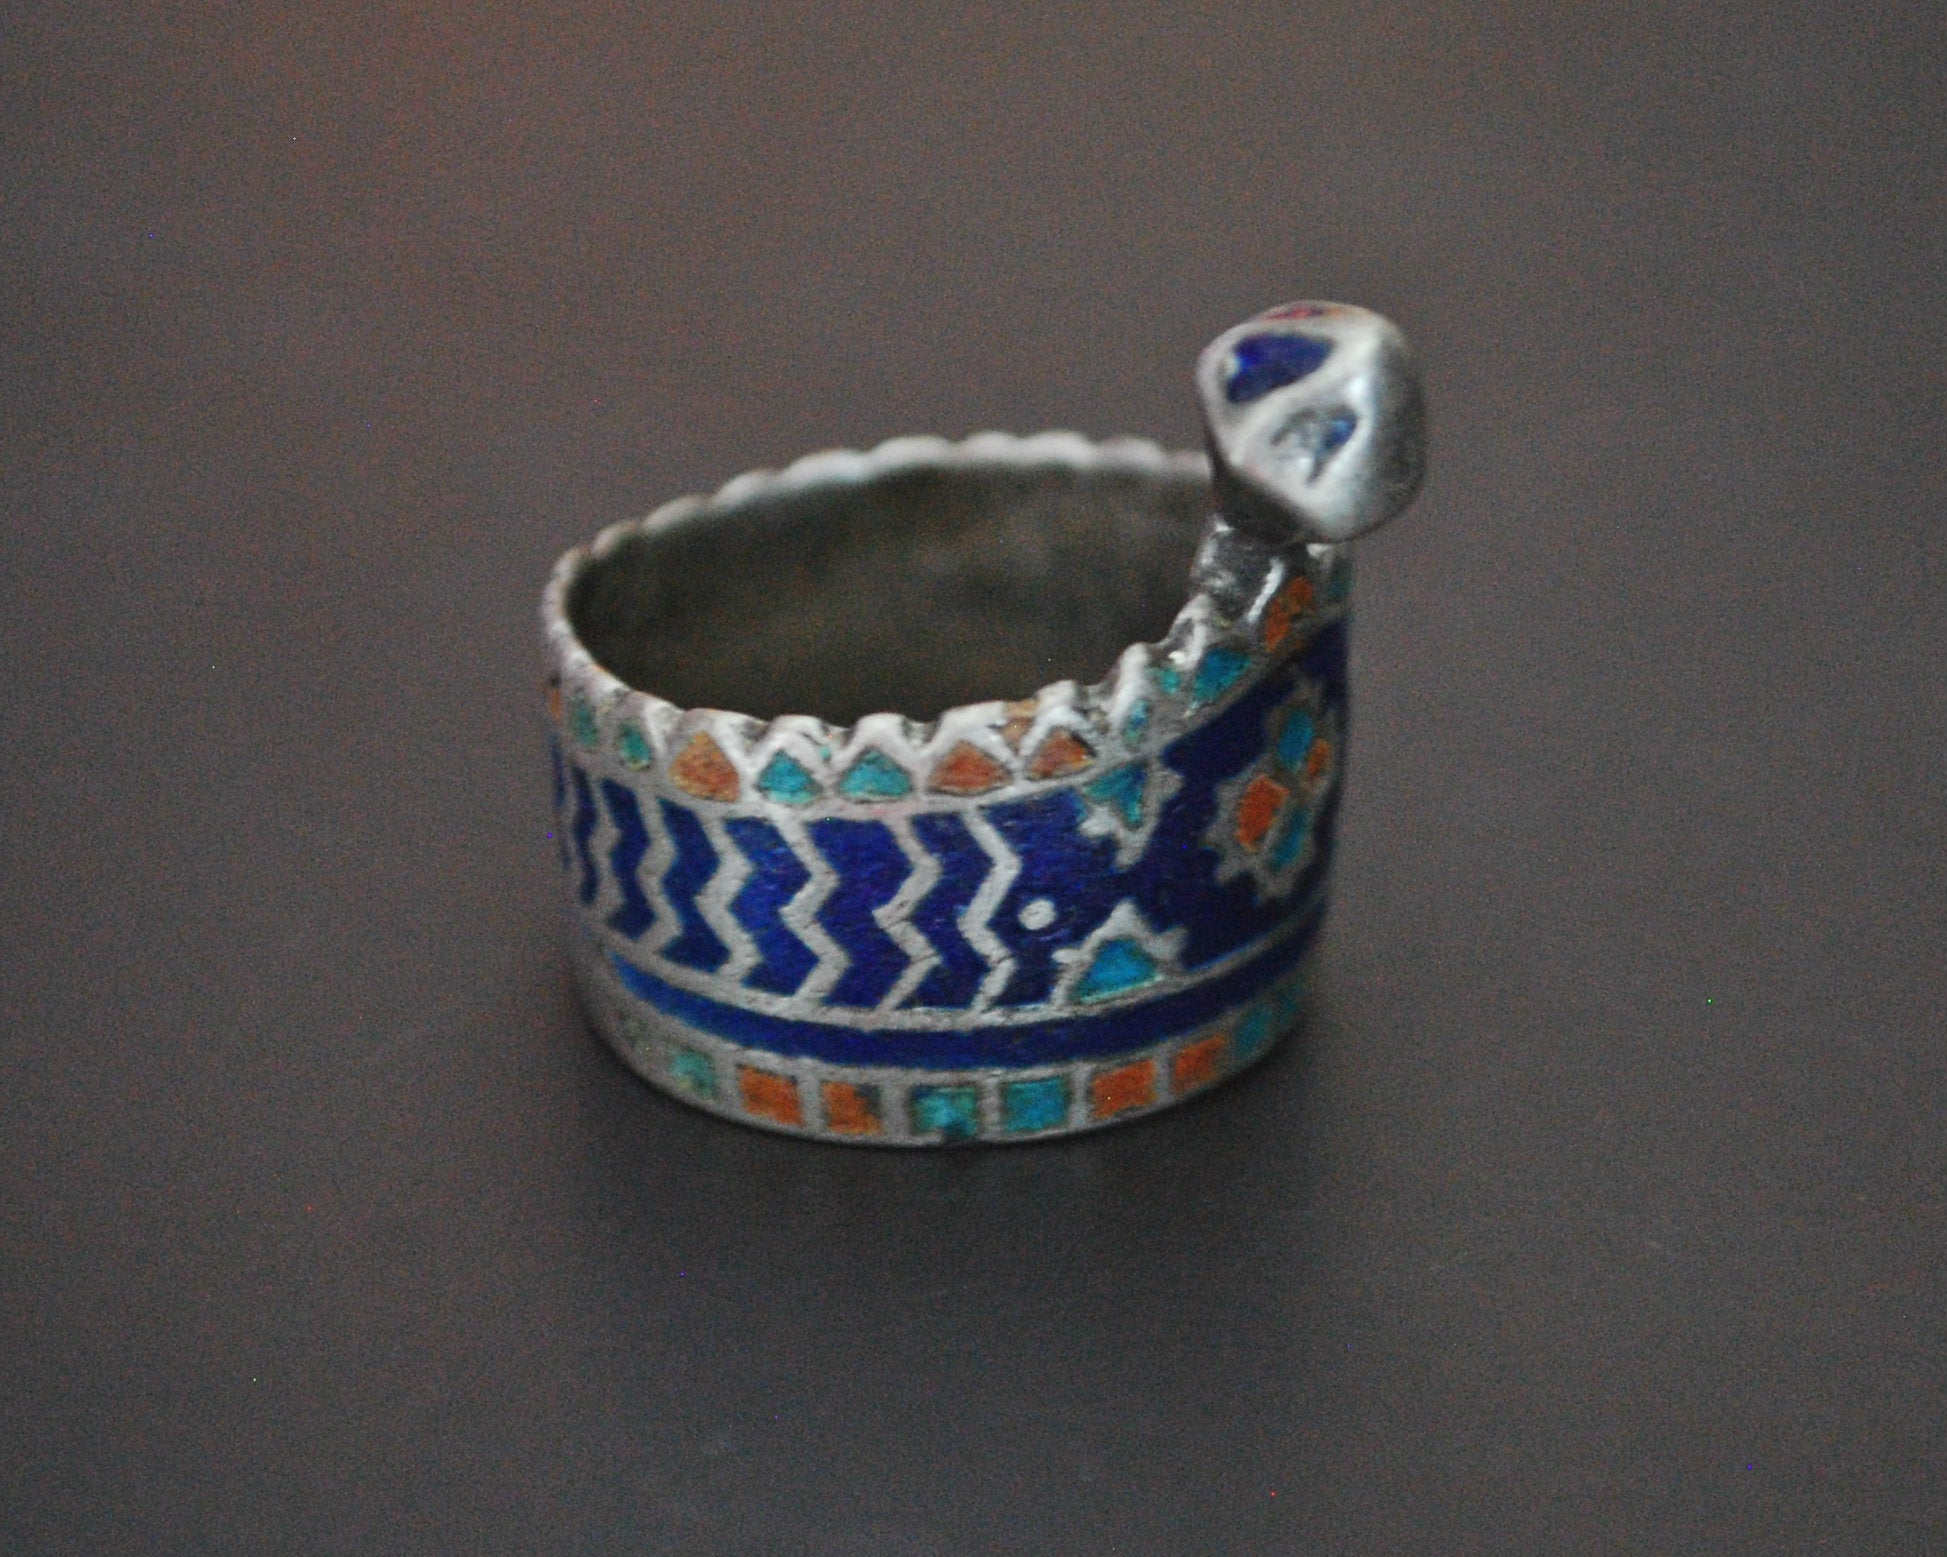 Multan Enamelled Thumb Ring - Size 9